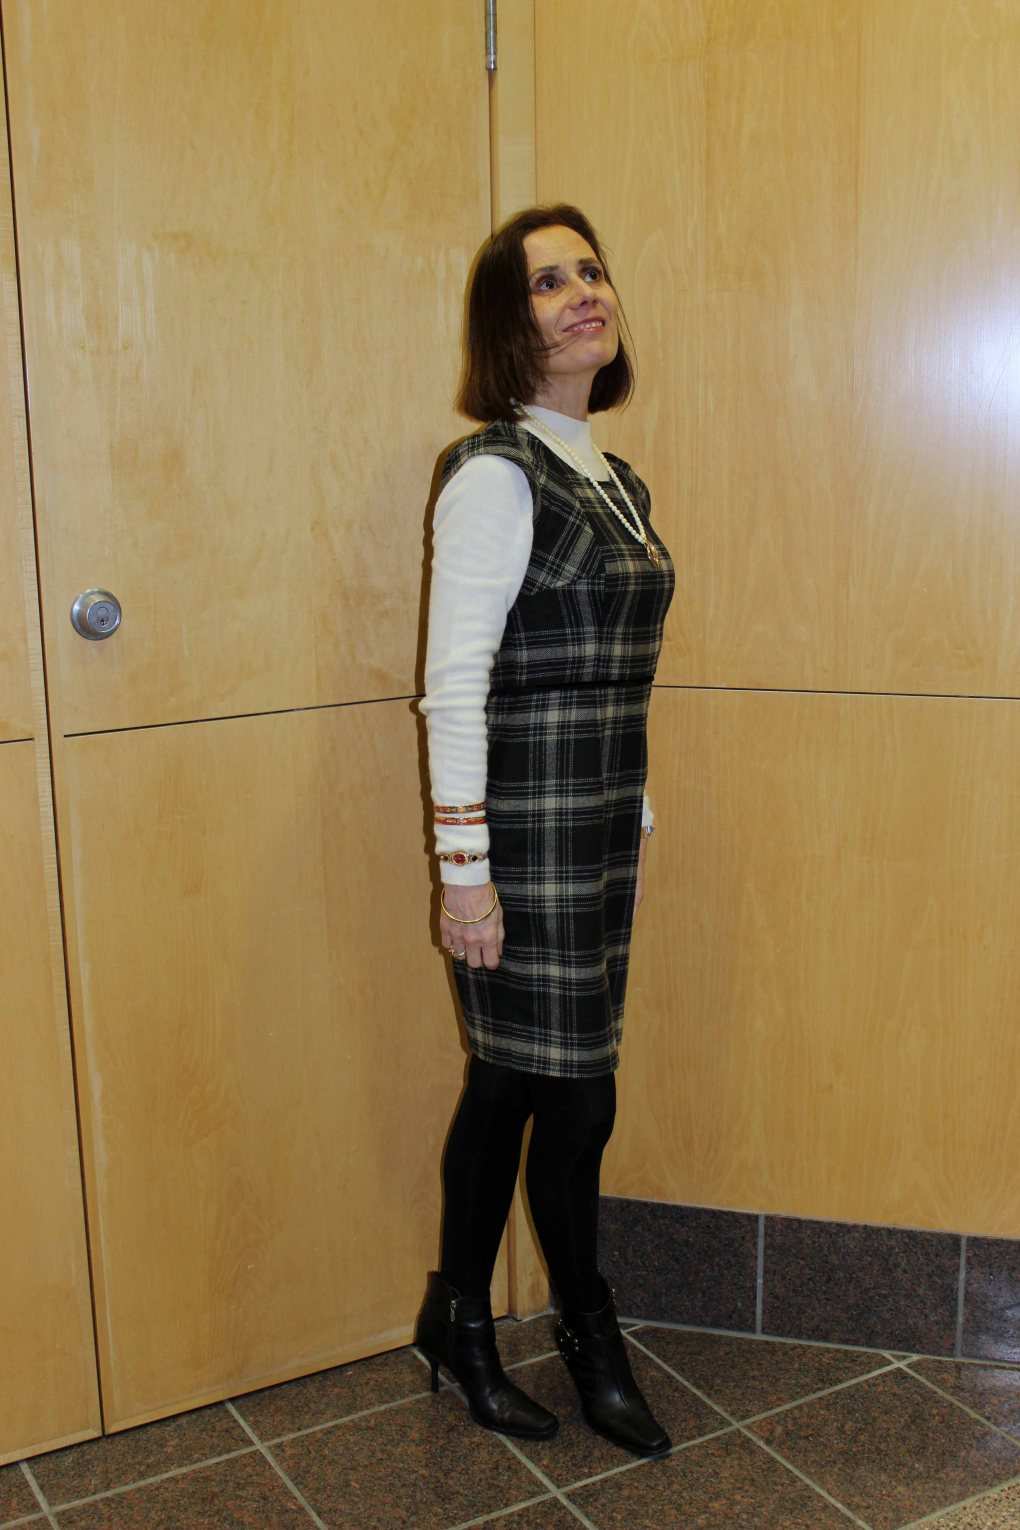 #fashionover40 woman in an office outfit conisting of second hand items